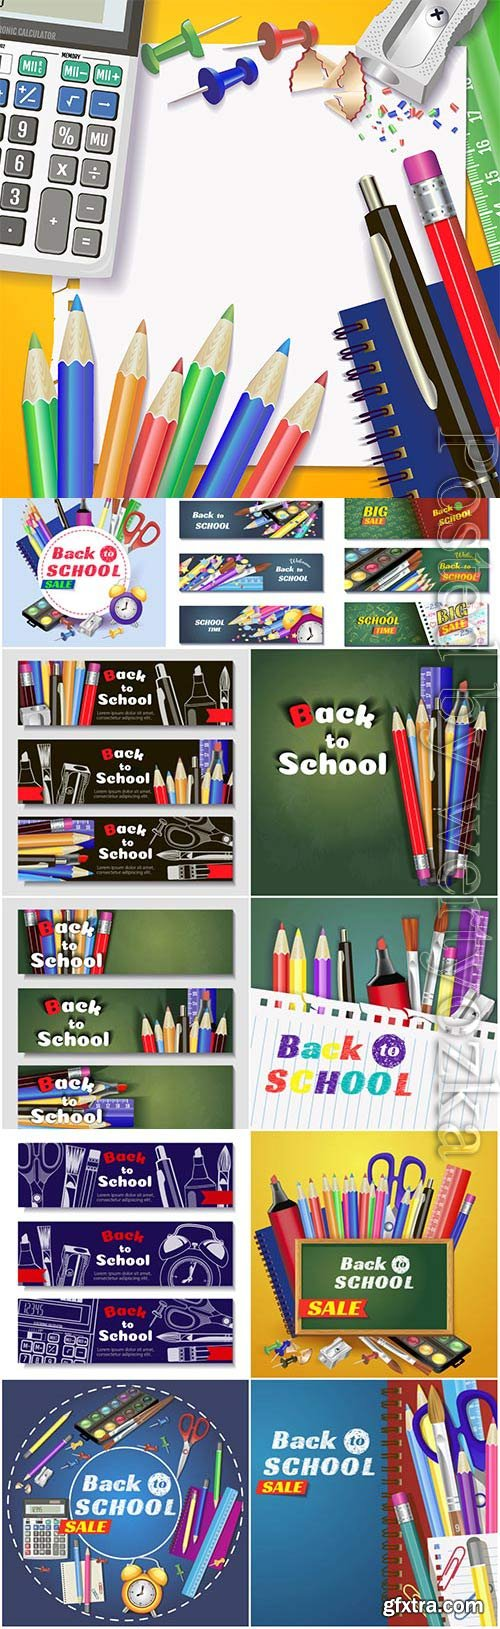 School banners and backgrounds in vector